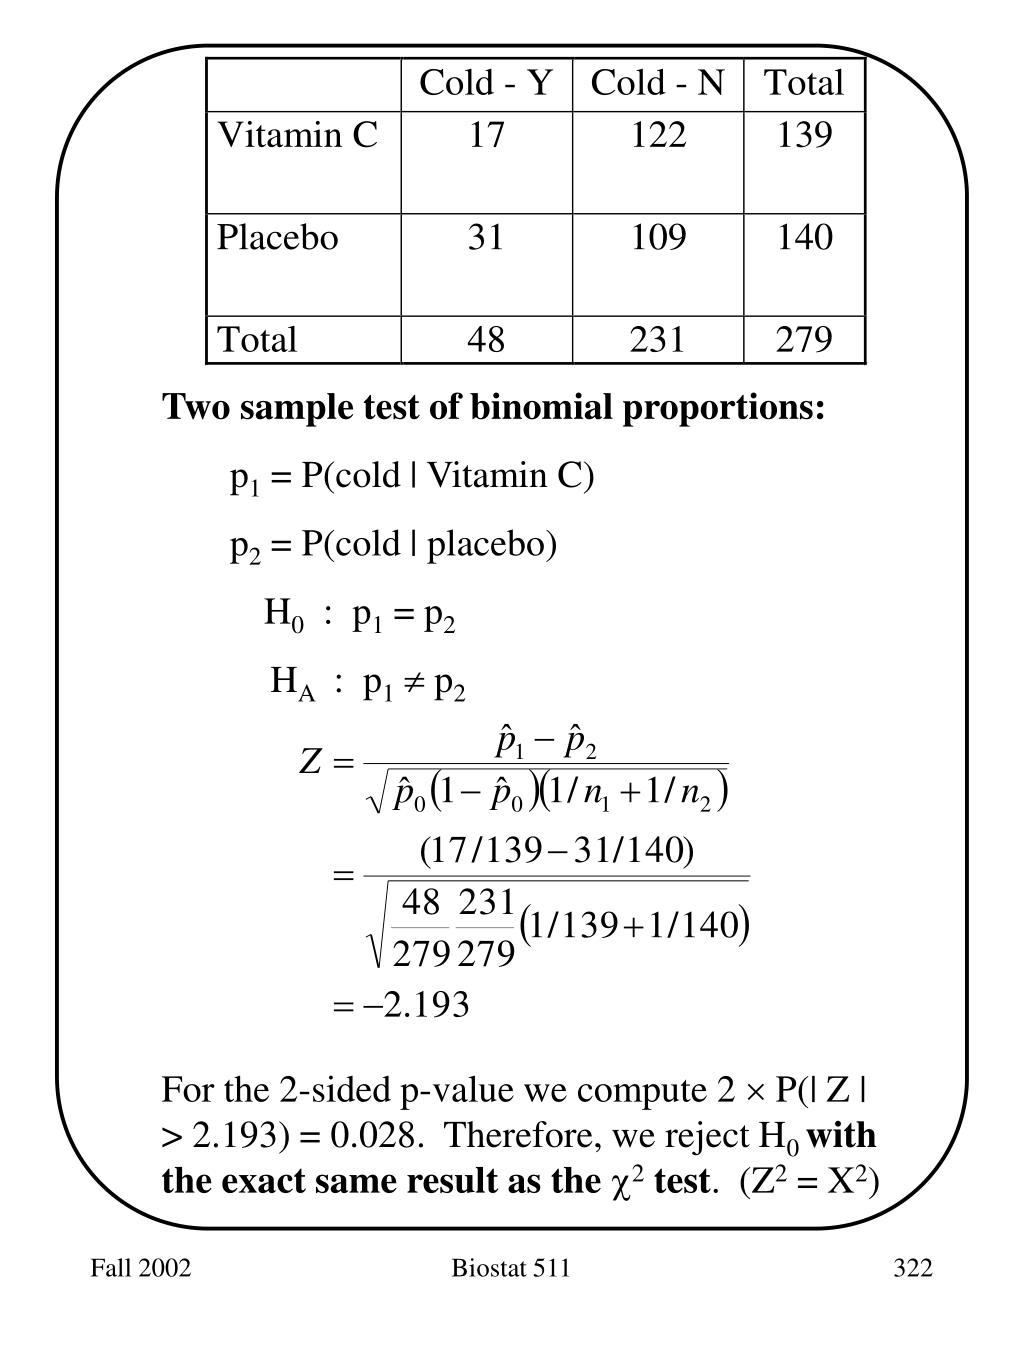 Two sample test of binomial proportions: